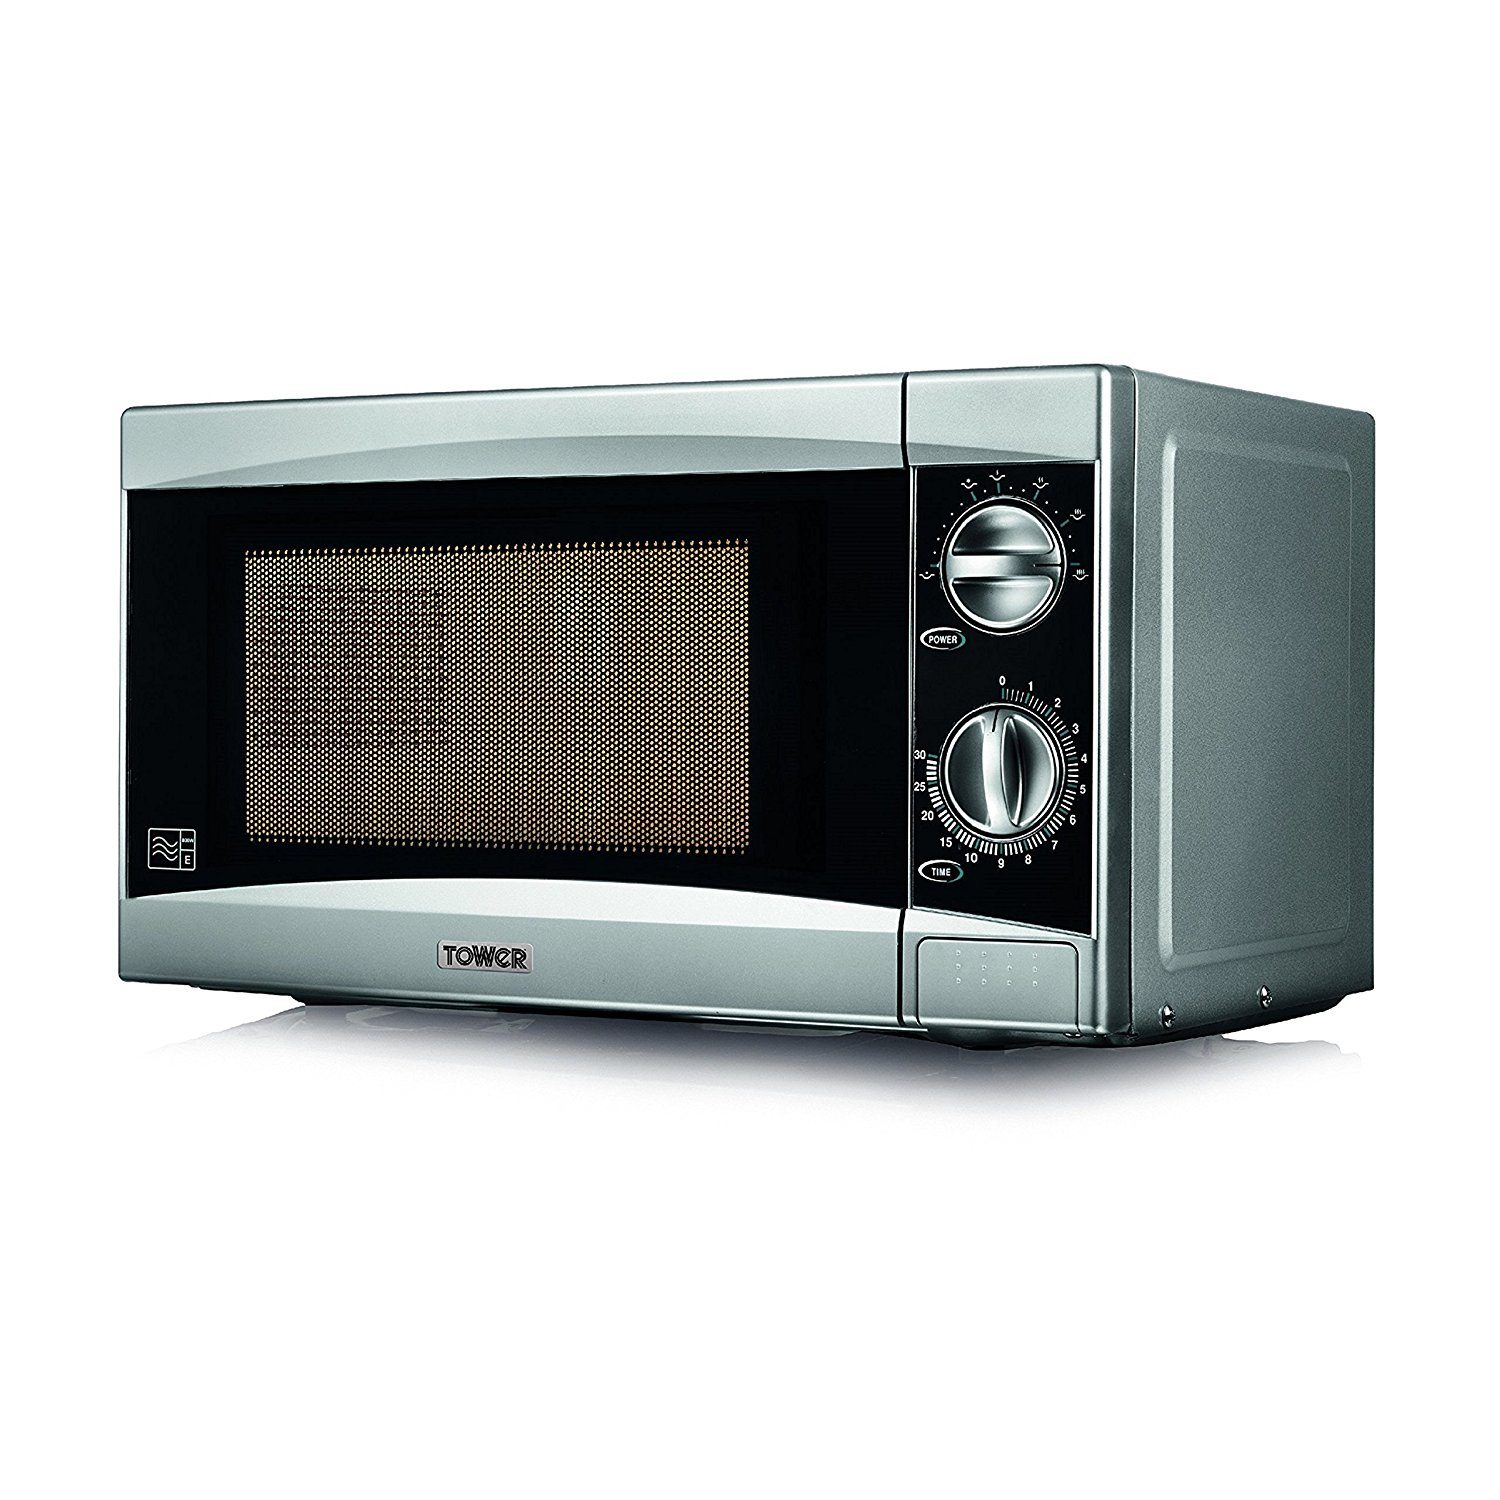 Tower T24001 Manual Microwave Review